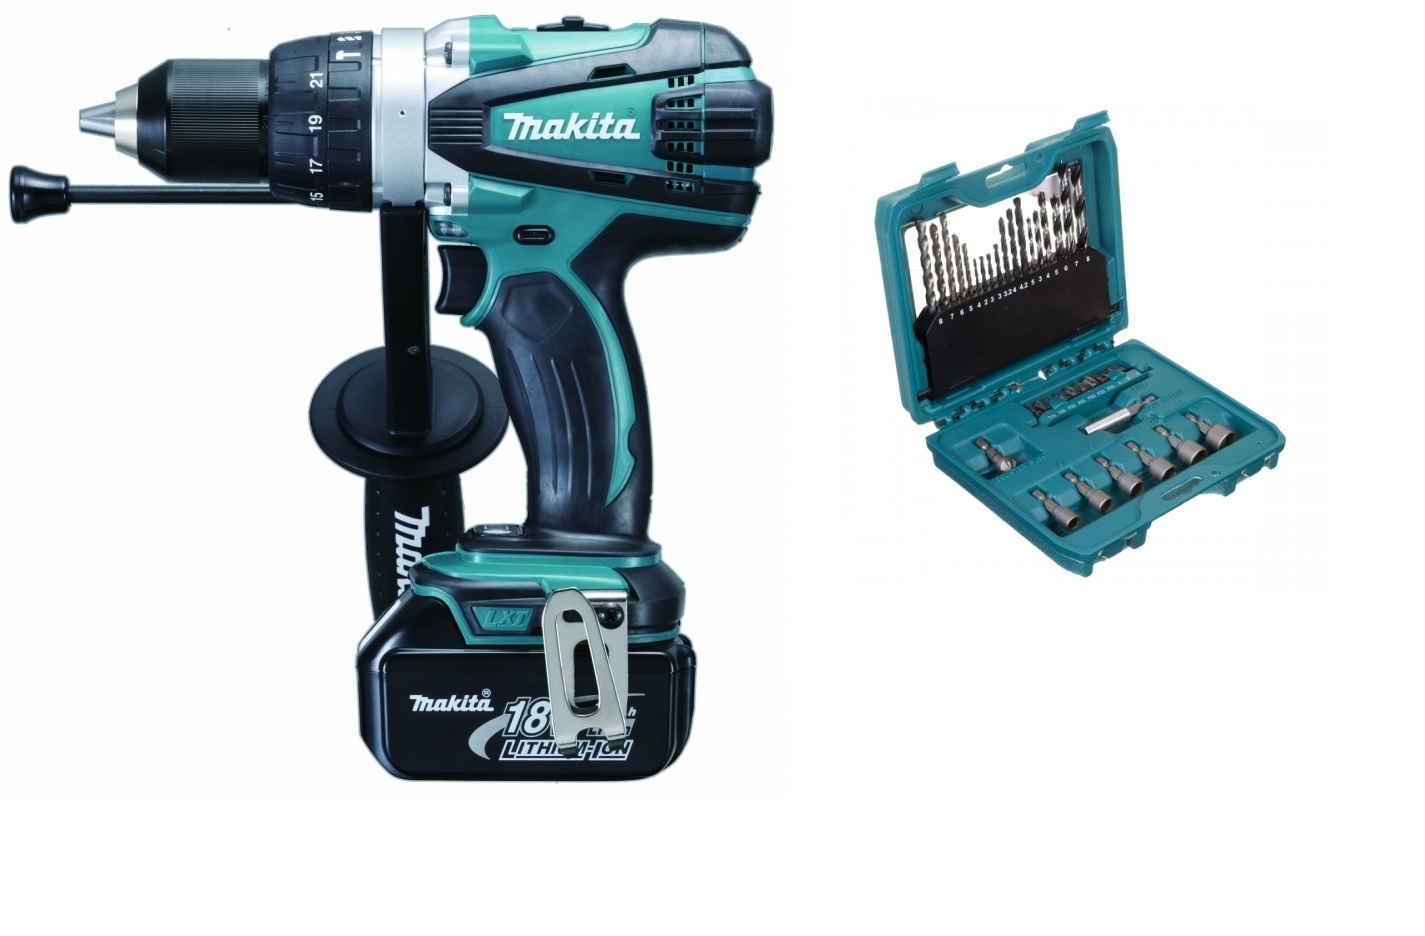 MAKITA DHP458P - 13mm Combi Drill Driver 18V incl. 4A Battery + 36pc Bit Set P4402